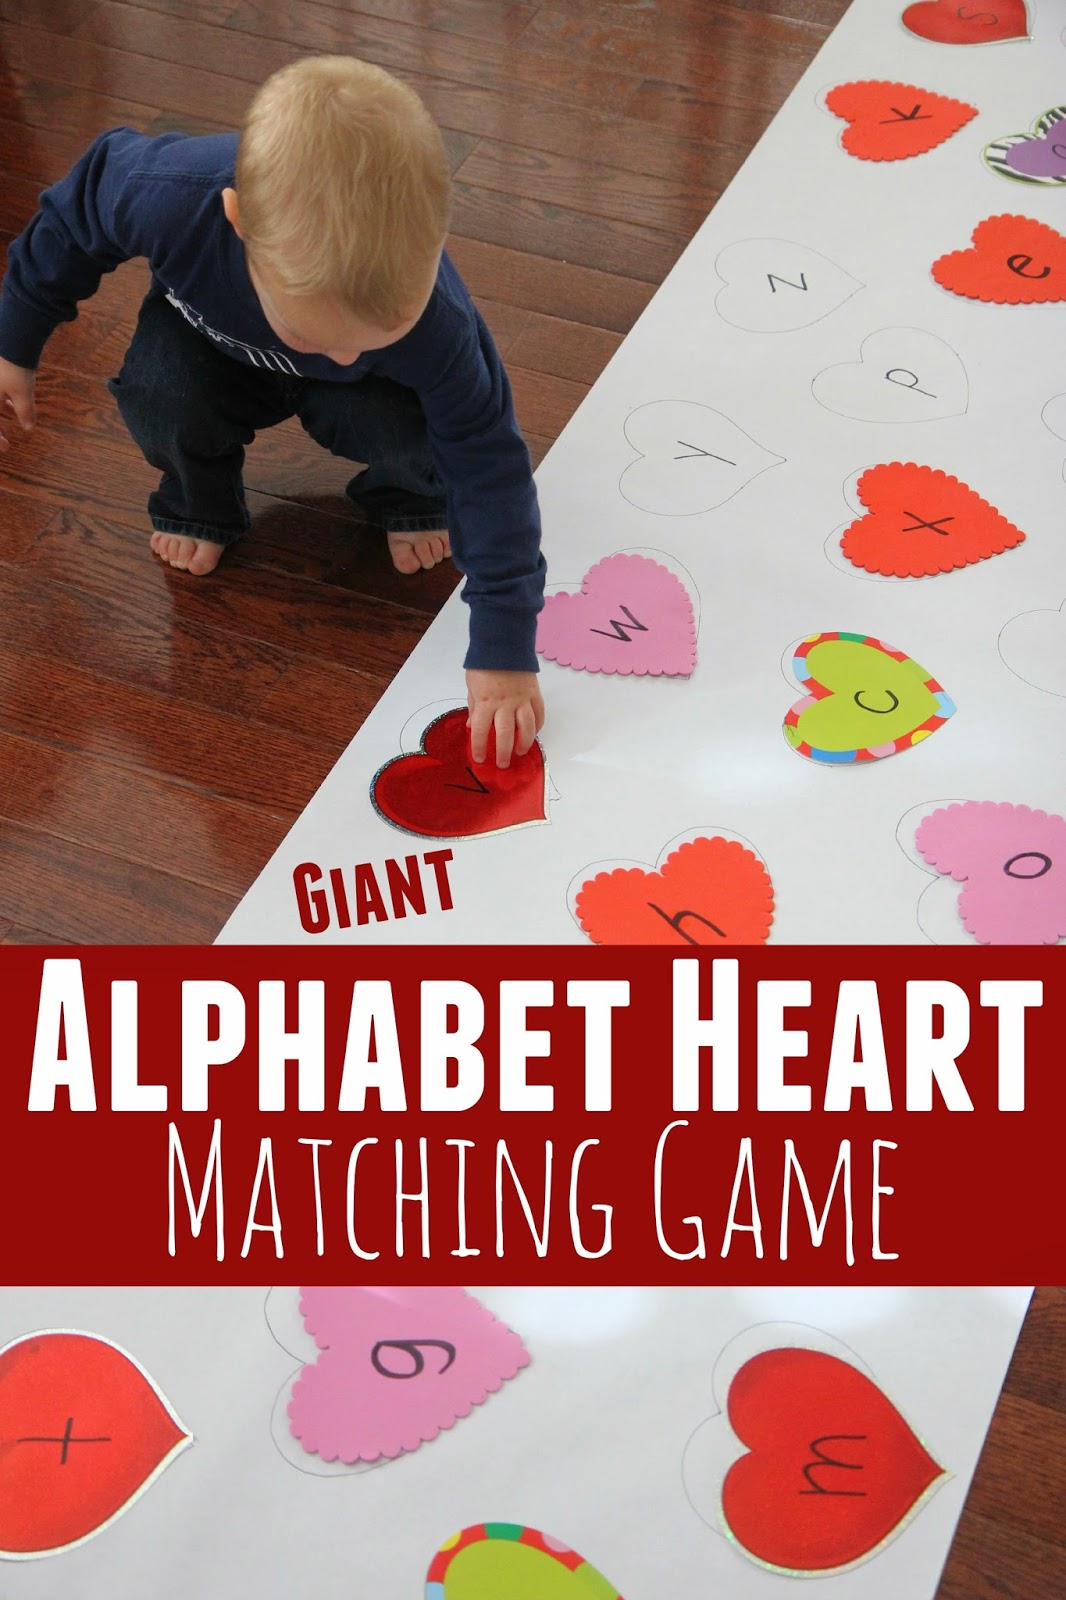 Toddler Approved Giant Alphabet Heart Matching Game